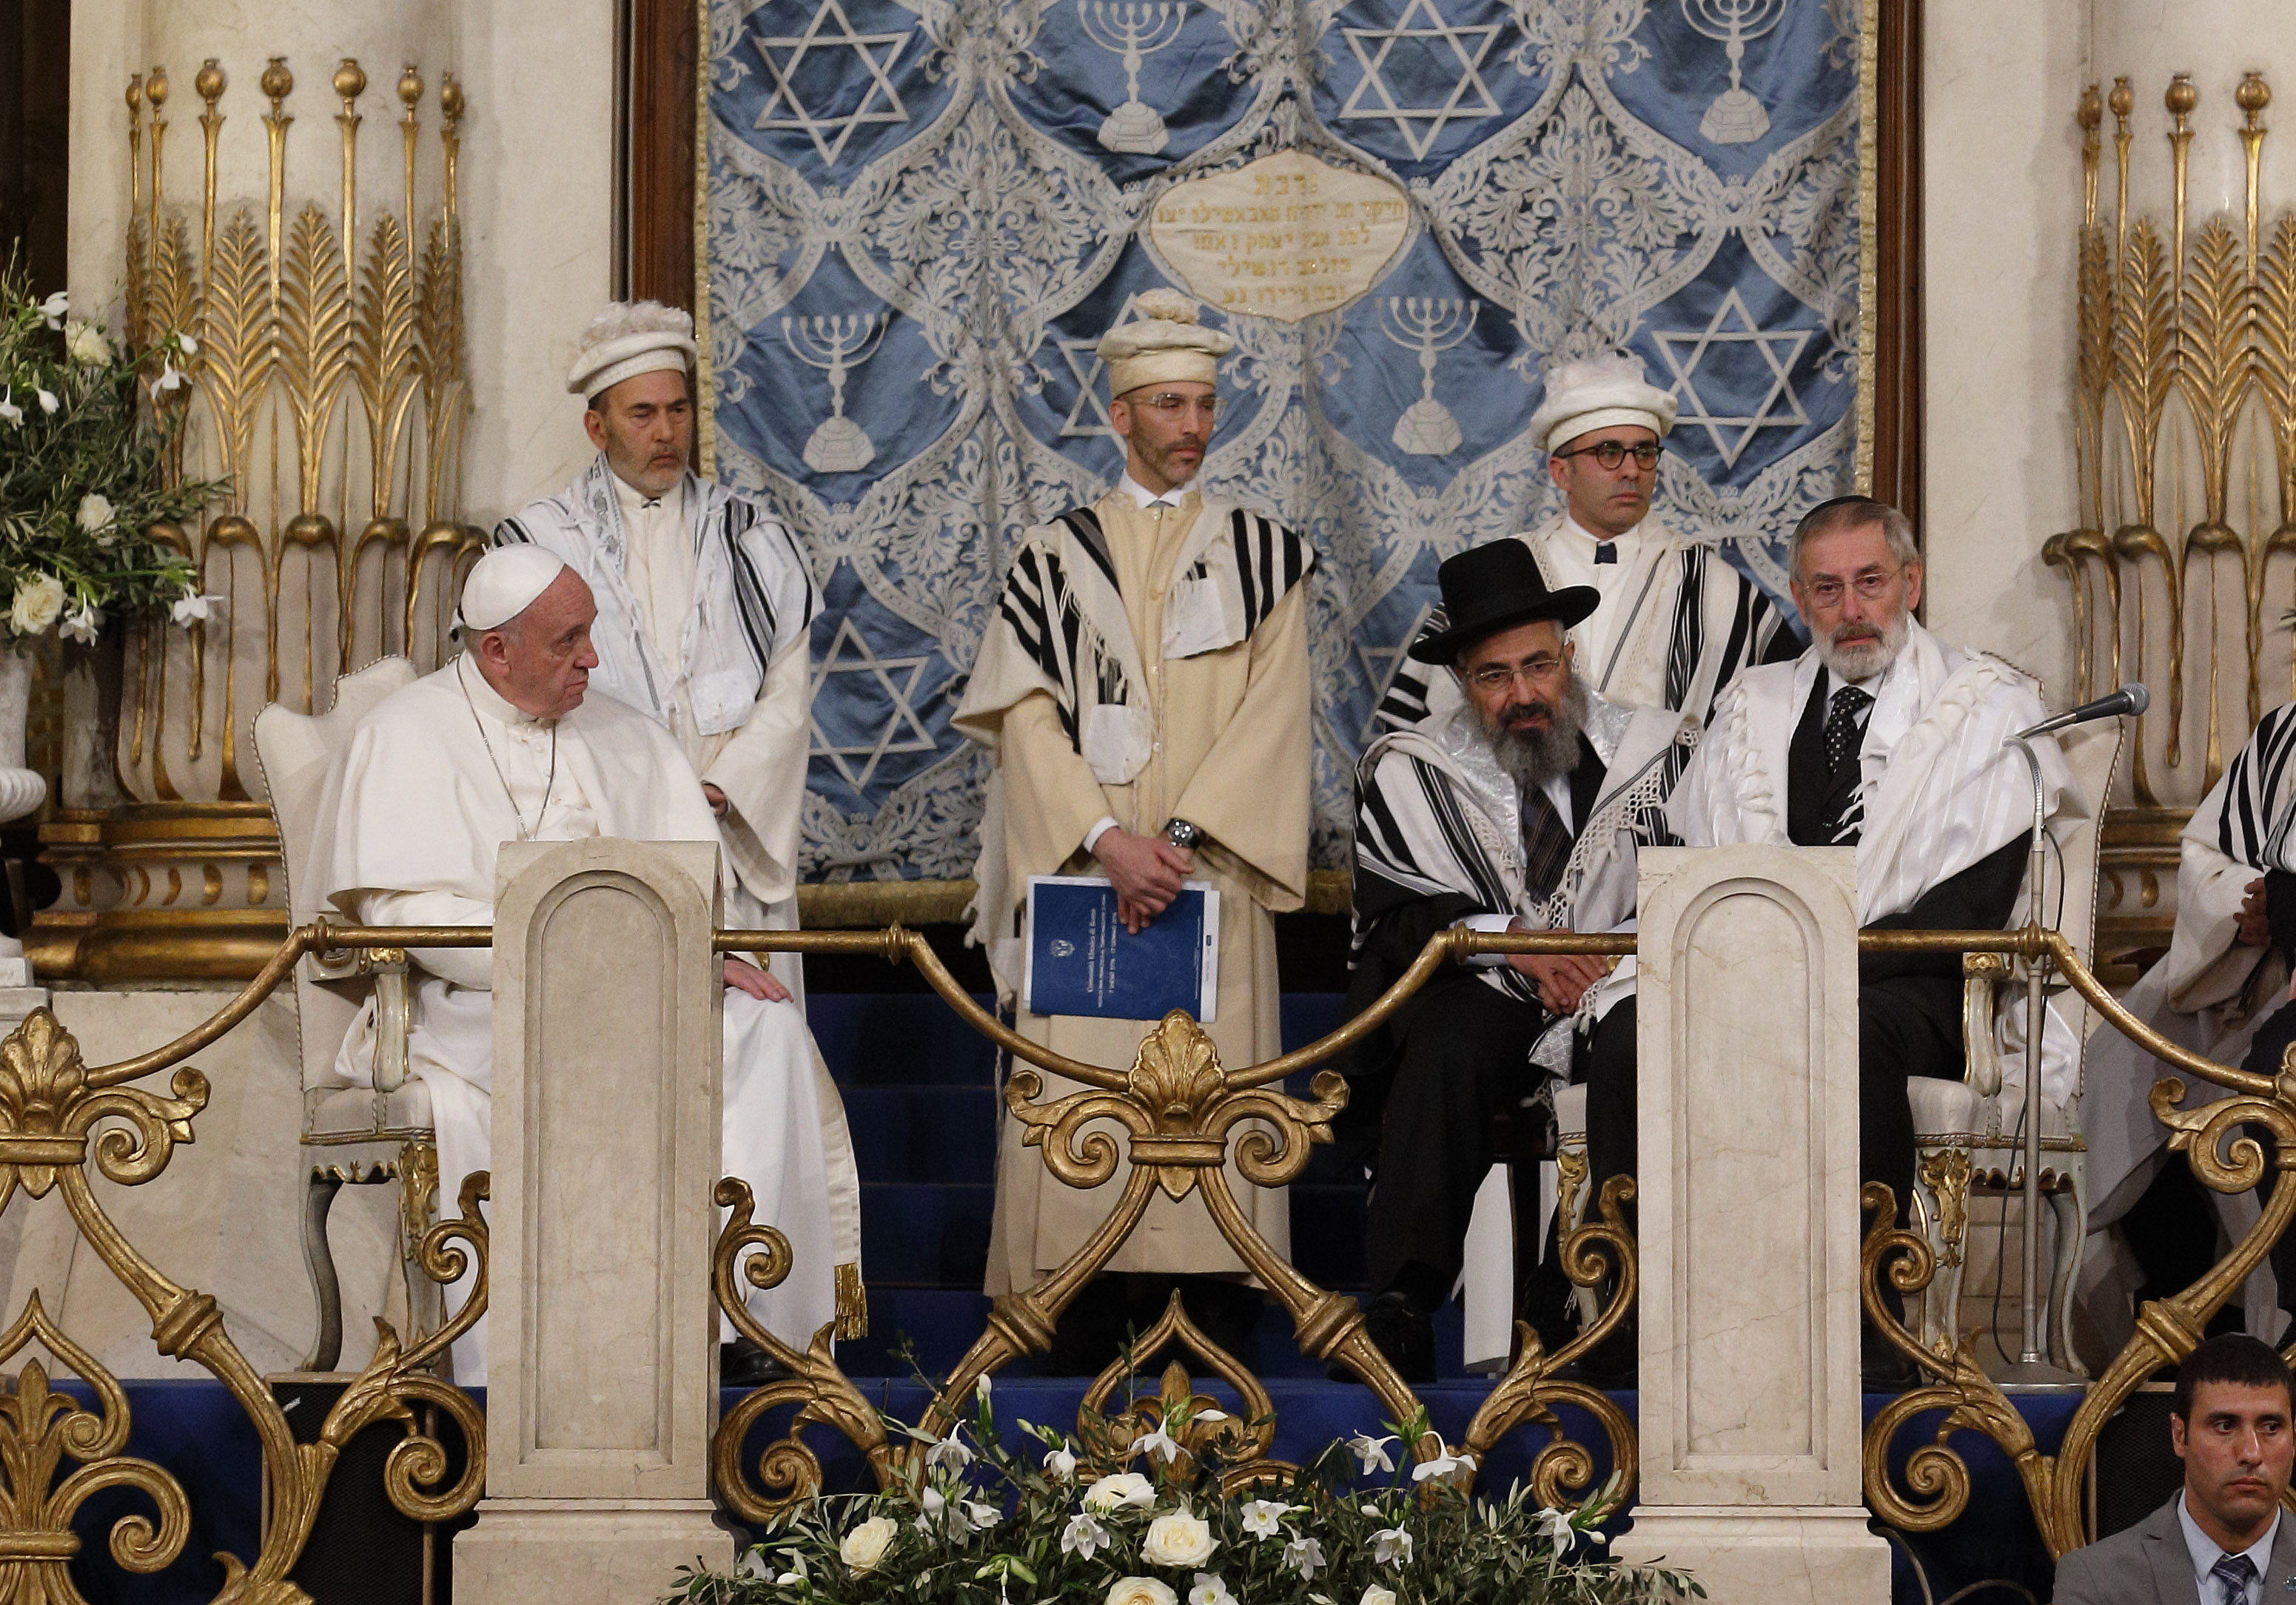 Pope Francis Relations Between Catholics And Jews Are Very Close